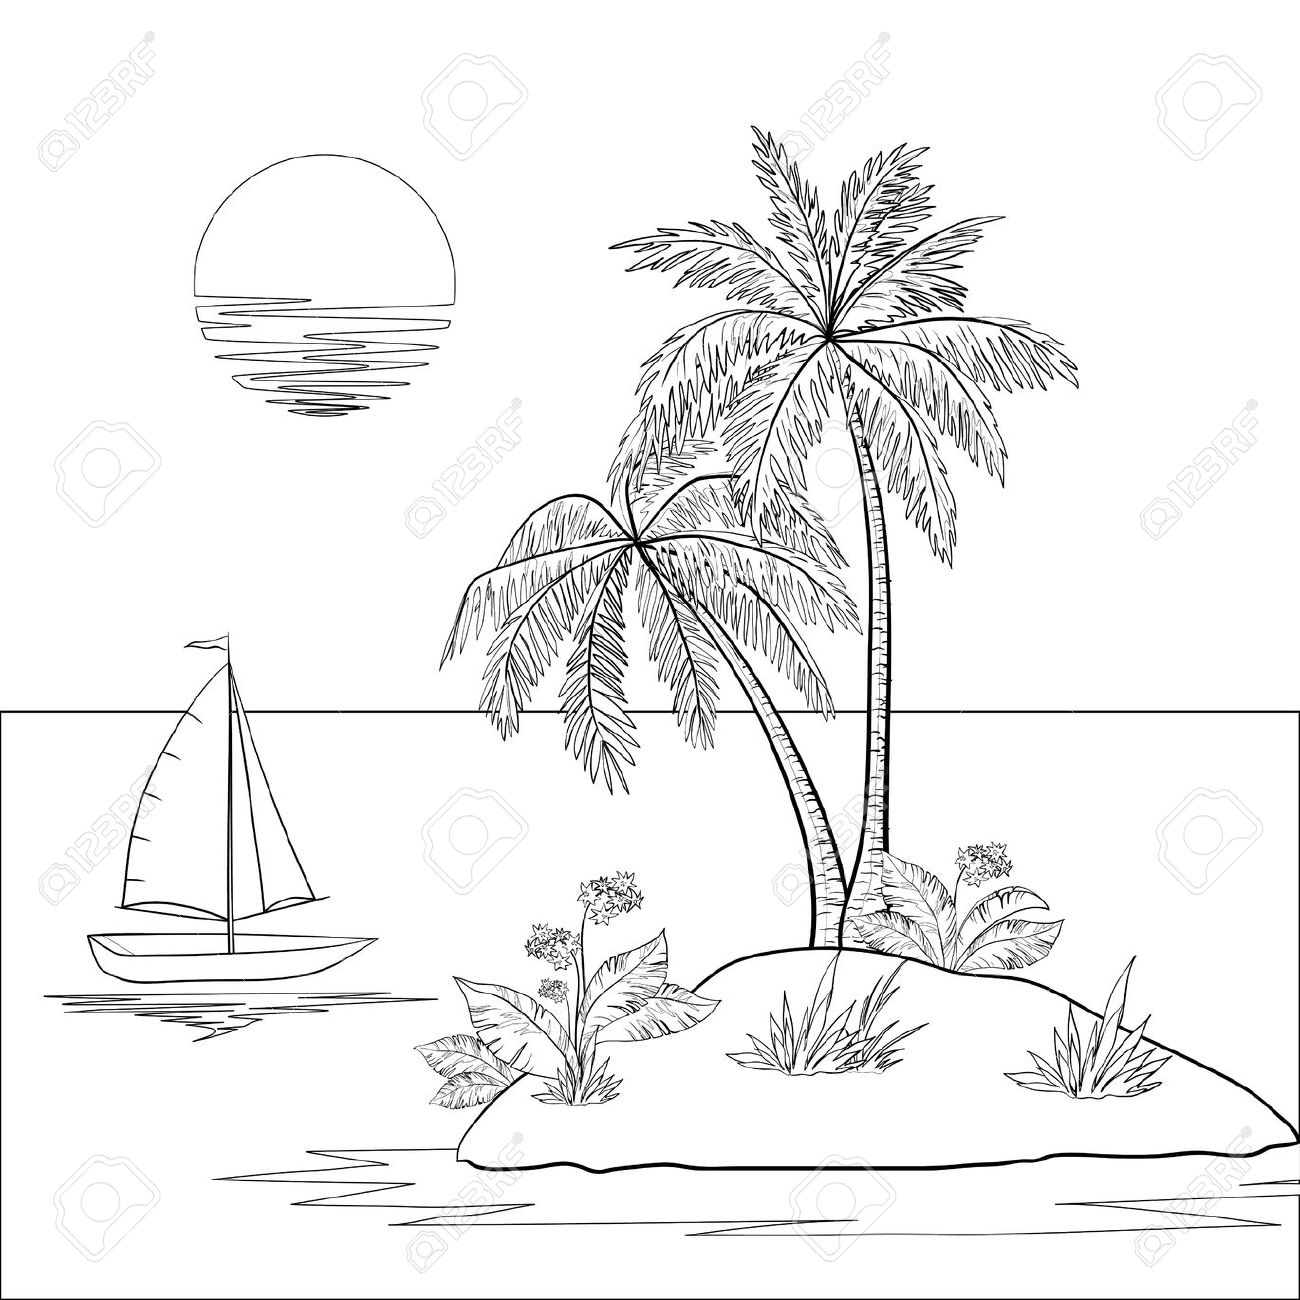 1300x1300 Ship, Sun, Tropical Sea Island With Palm Trees And Flowers Black